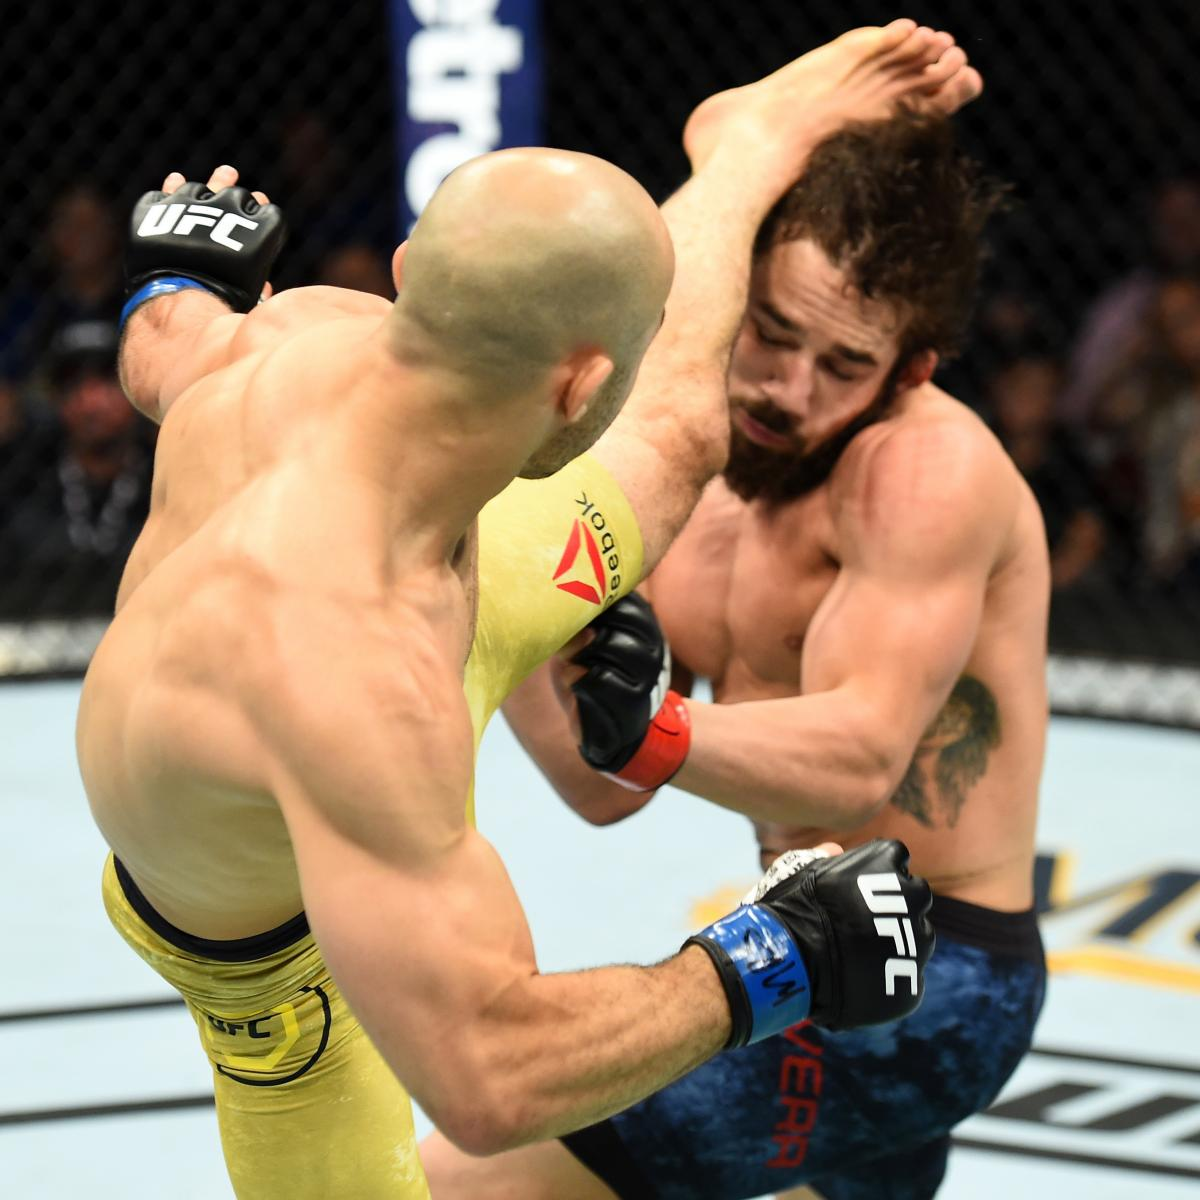 Flipboard Sports Highlights News Now: Ranking The Best Combat Sports Knockouts From June